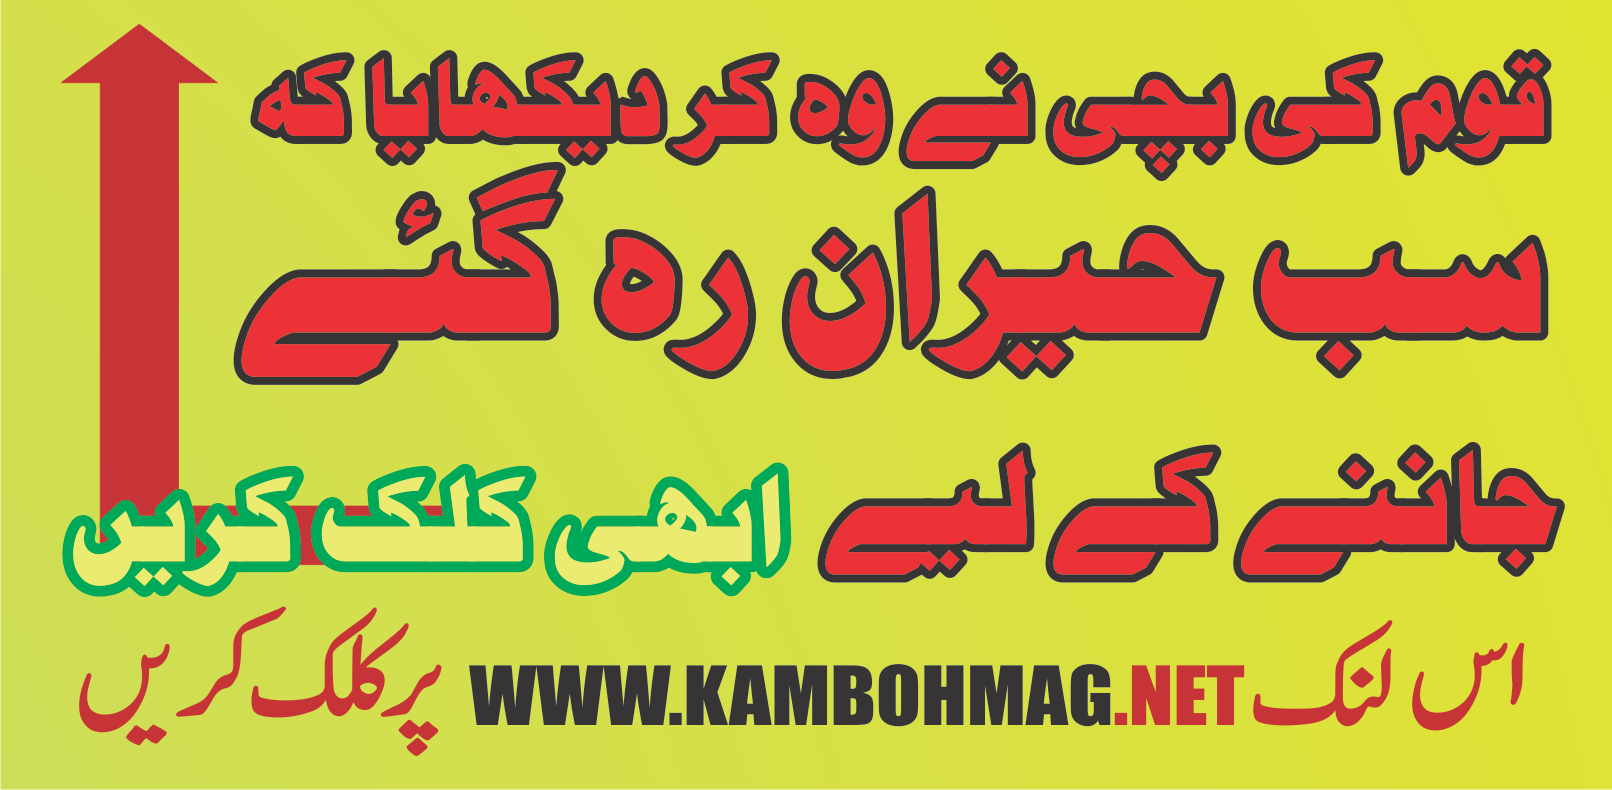 kamboh girl topper metric 2016 result